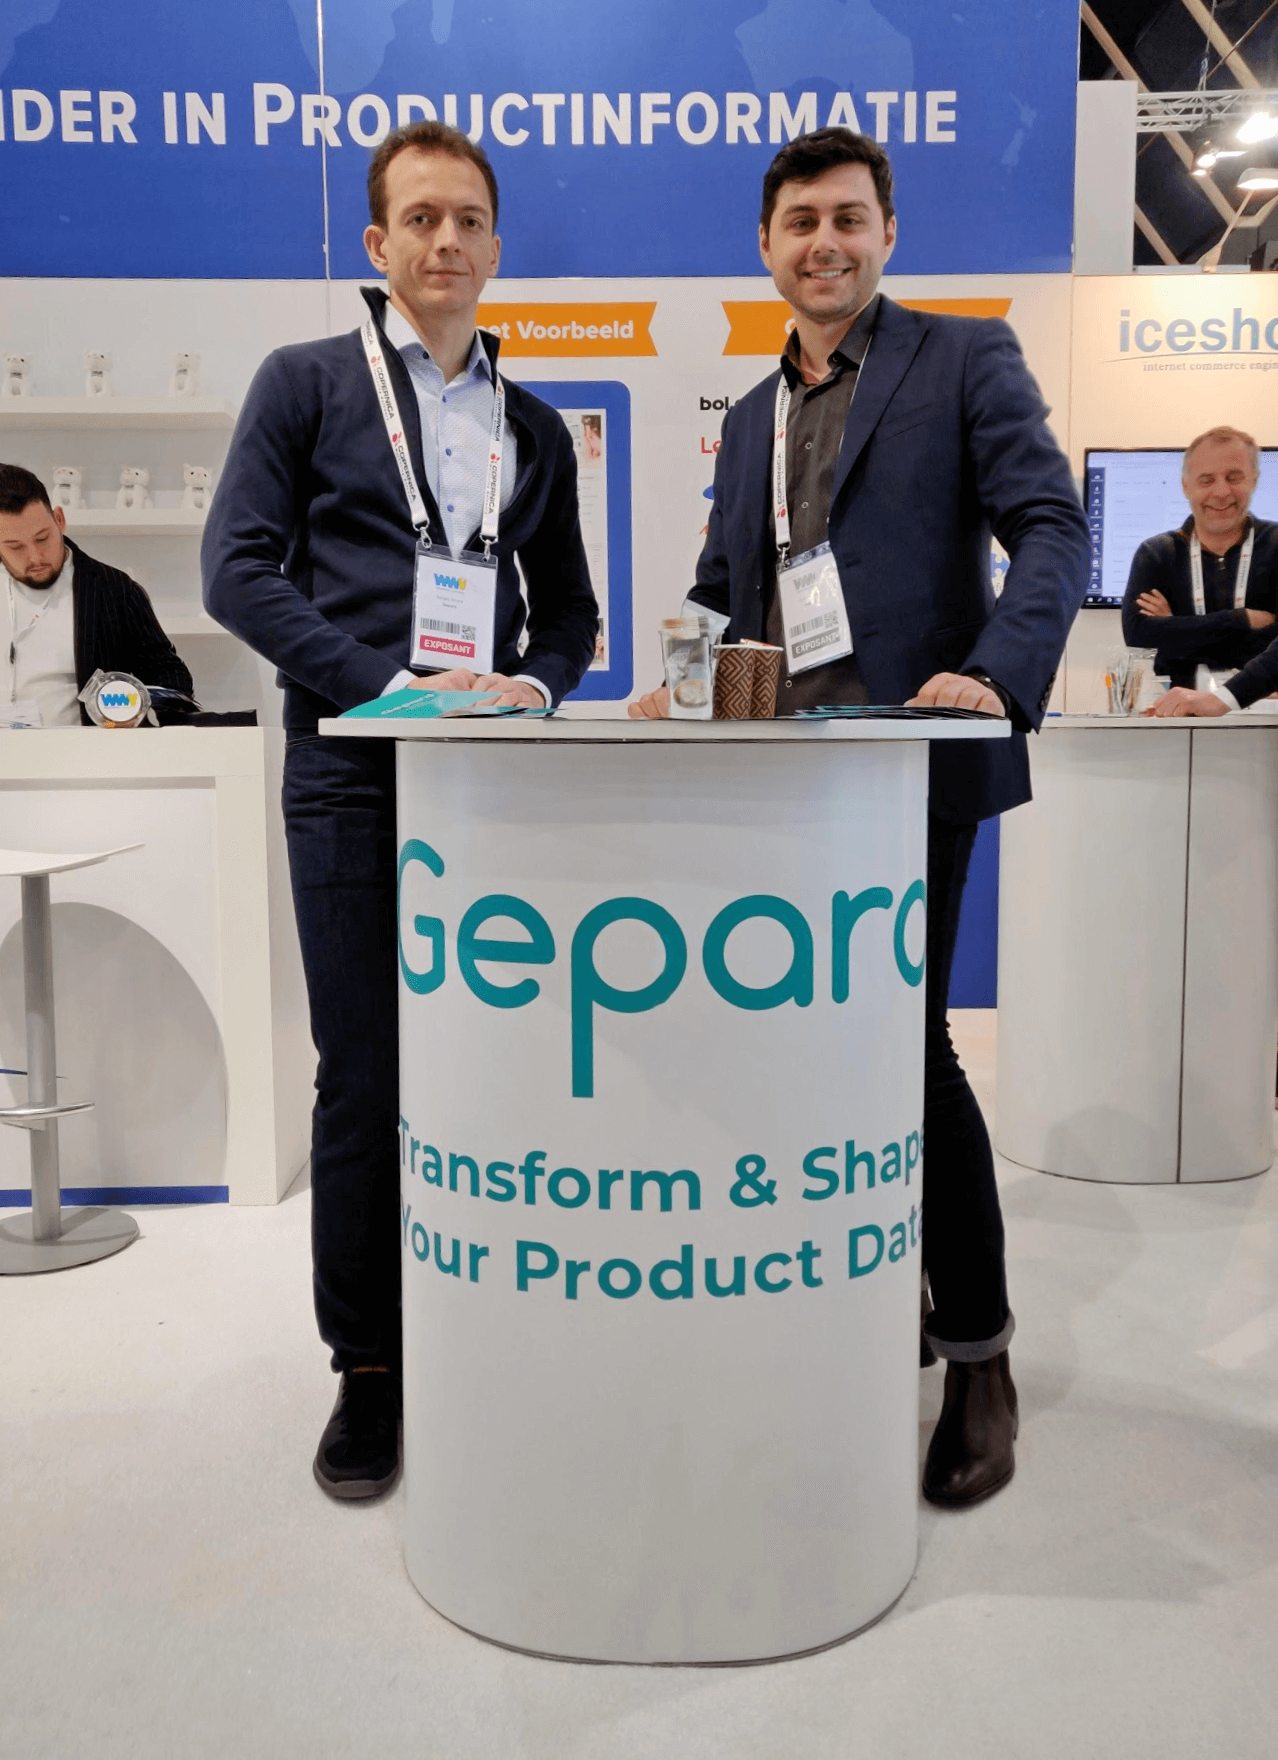 Sergey Shvets, CEO and founder at Gepard and Cyril Dorogan, Senior Partnership Manager at Gepard. Webwinkel Vakdagen, Netherlands, 2019